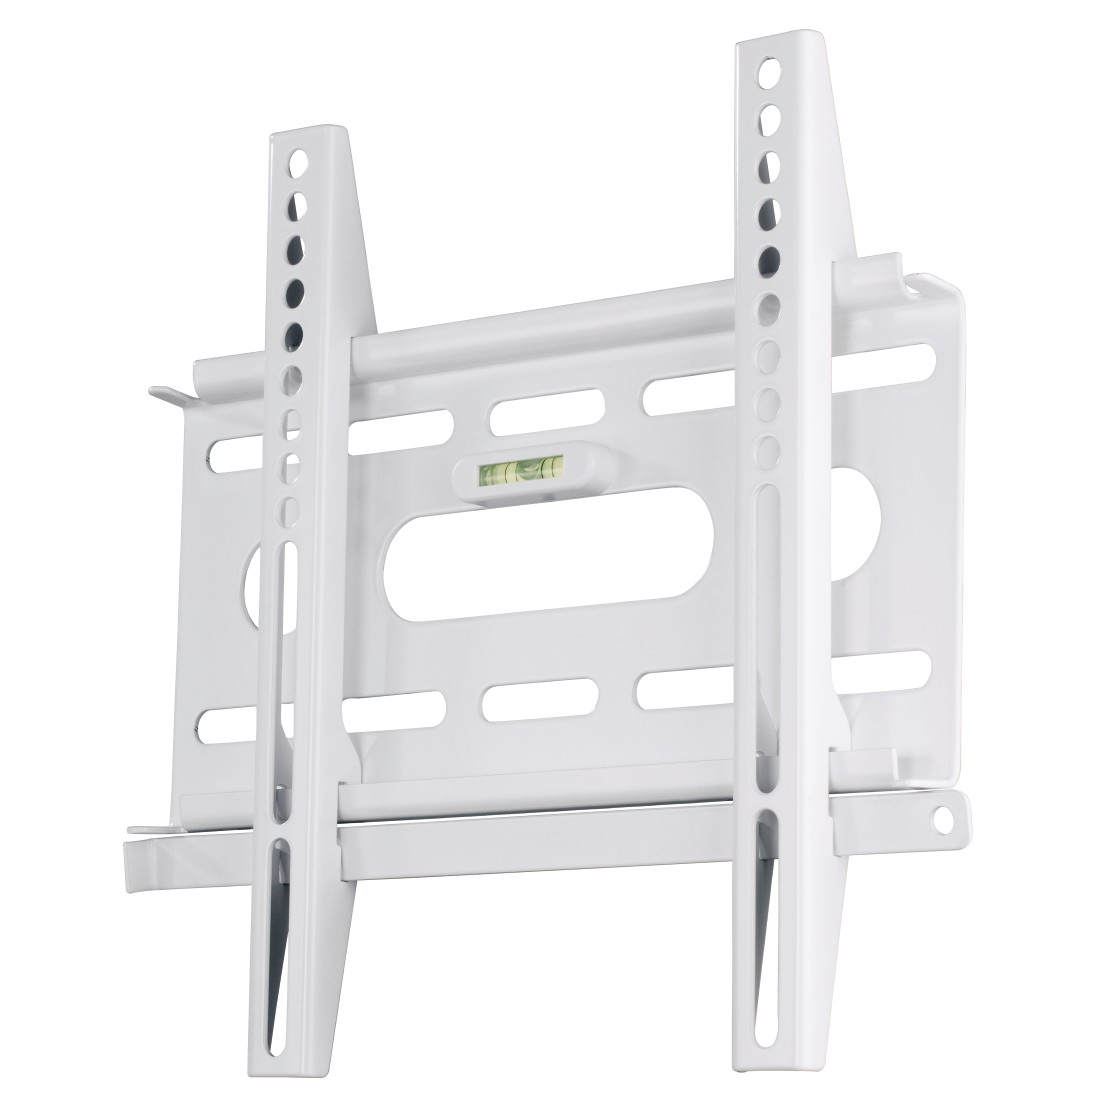 HAMA Ultraslim FIX TV Wall Bracket 3